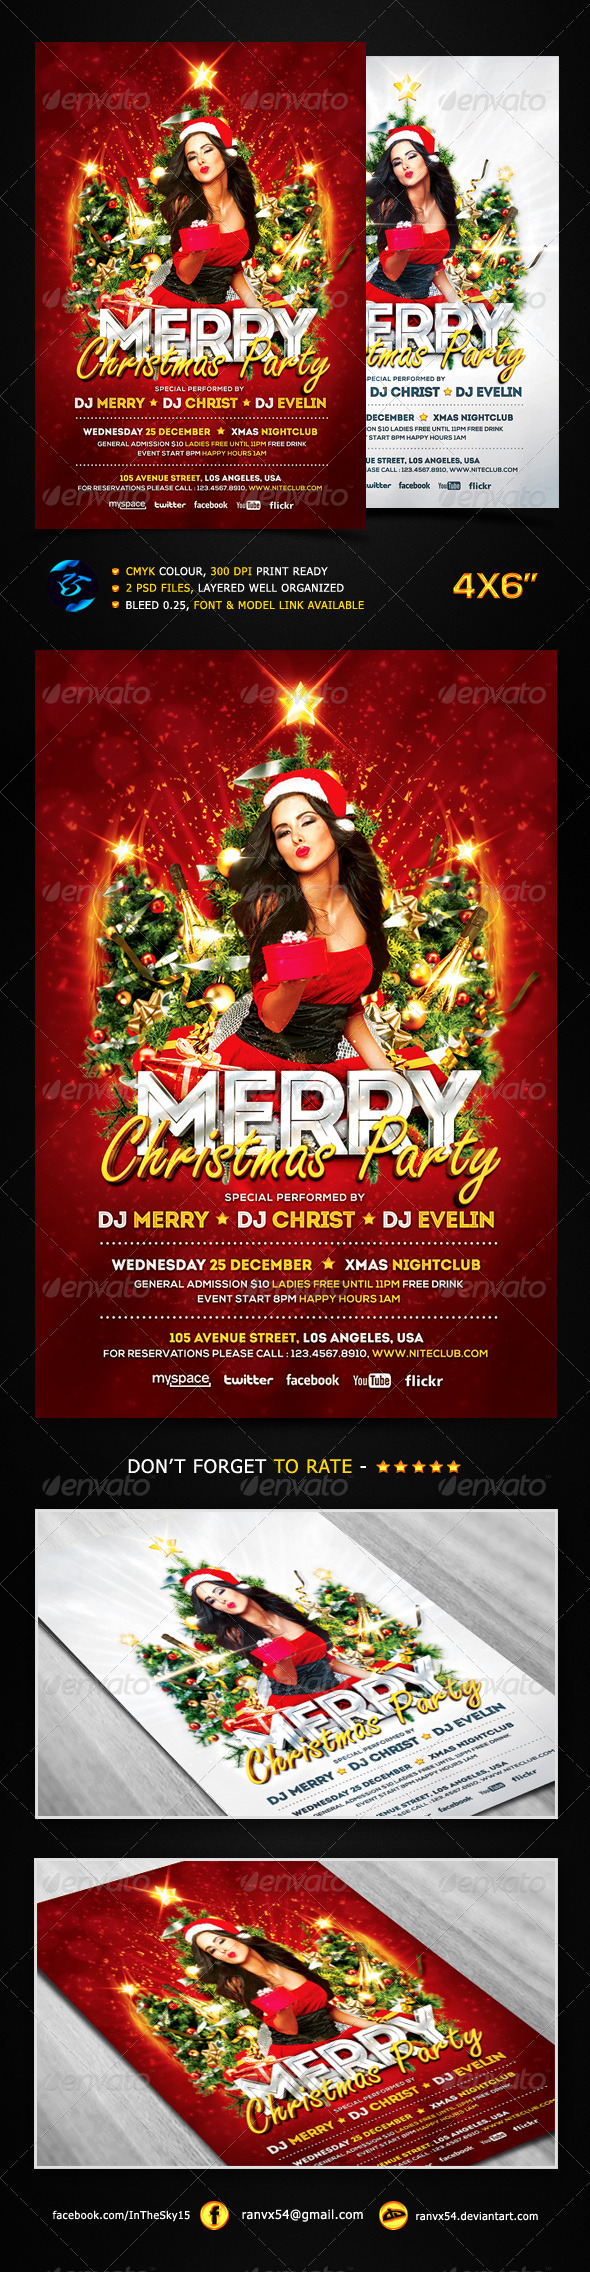 Merry Christmas Party Flyer Template - Events Flyers